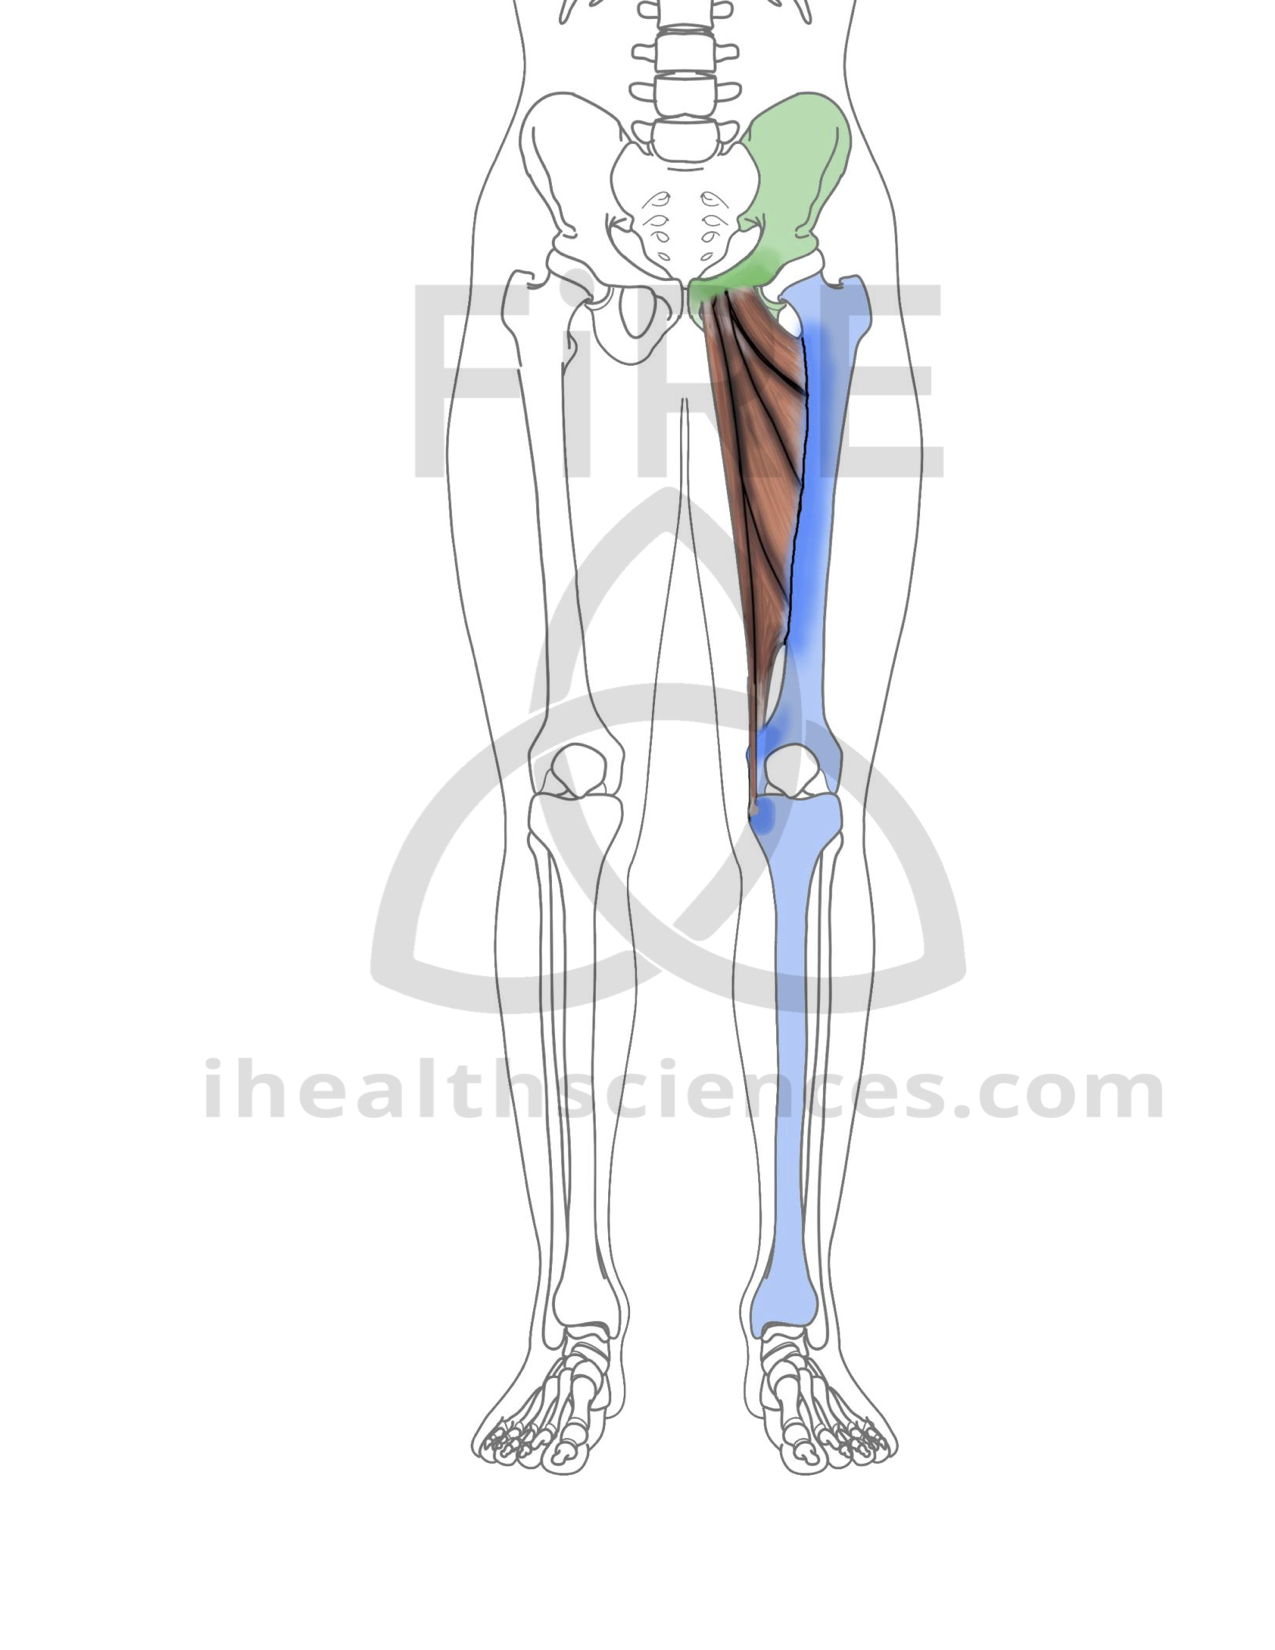 Adductor Longus Integrated Health Sciences